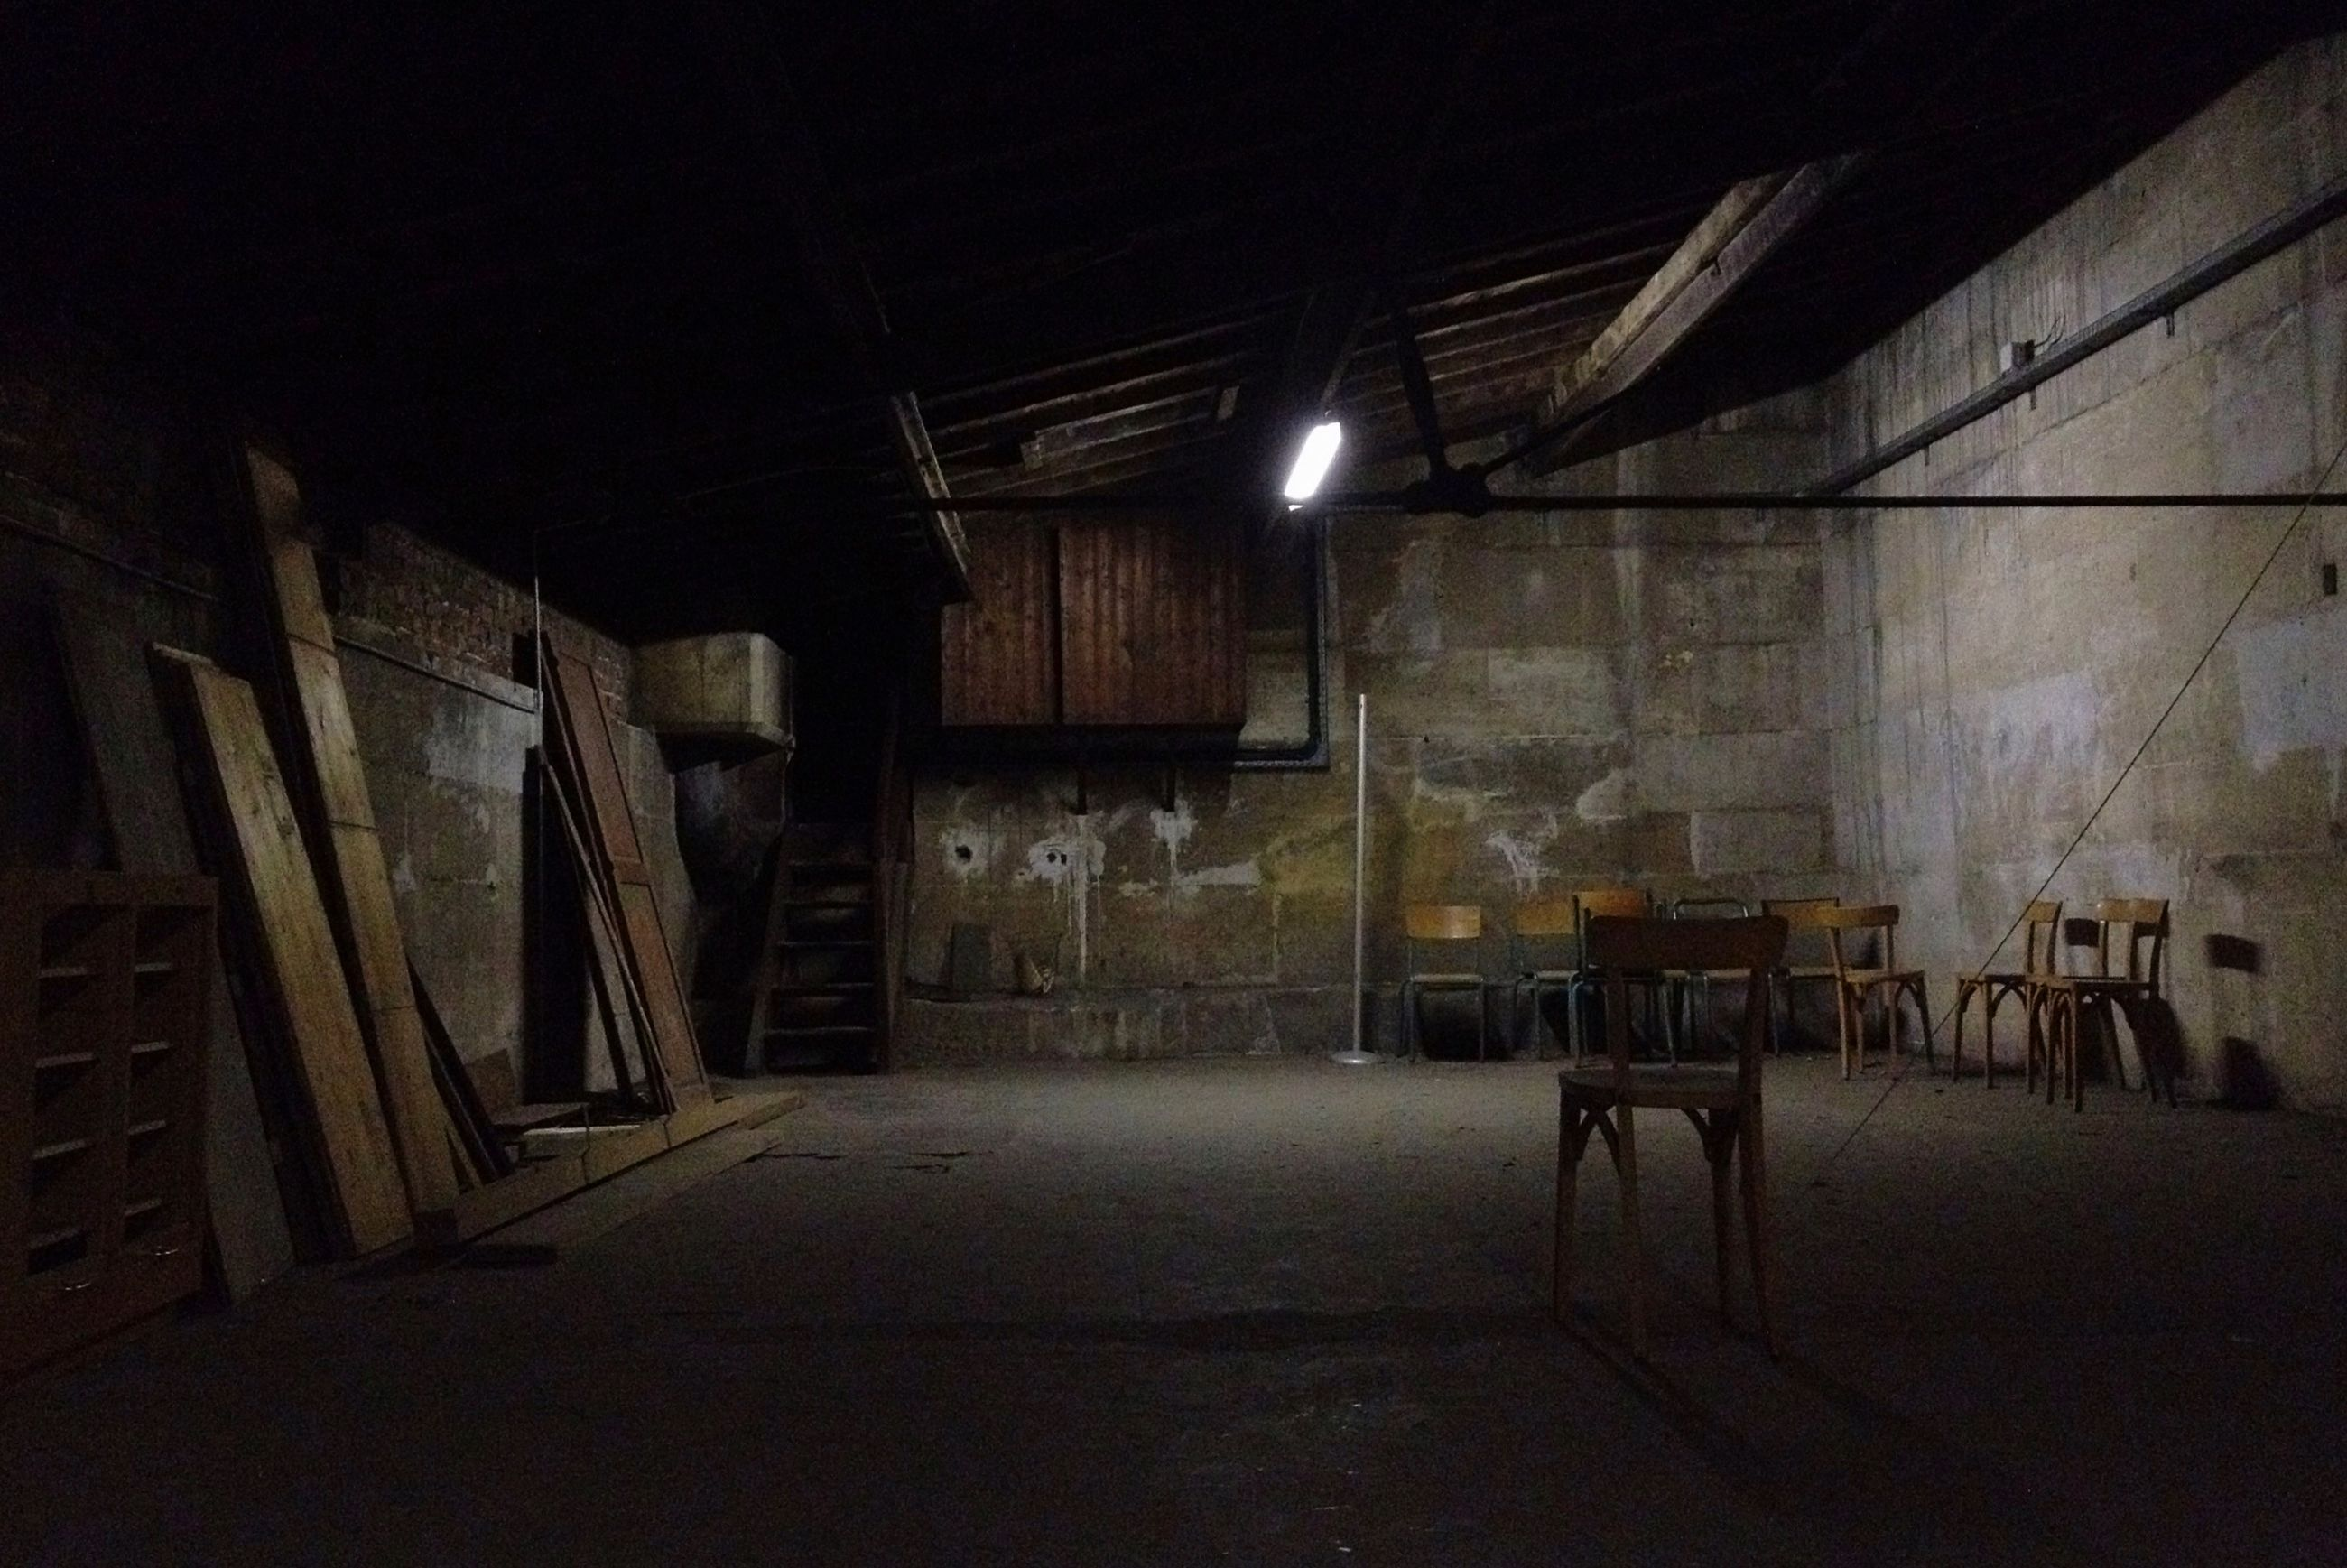 architecture, built structure, abandoned, indoors, obsolete, damaged, deterioration, old, run-down, empty, wall - building feature, interior, absence, house, building exterior, illuminated, window, messy, night, wall